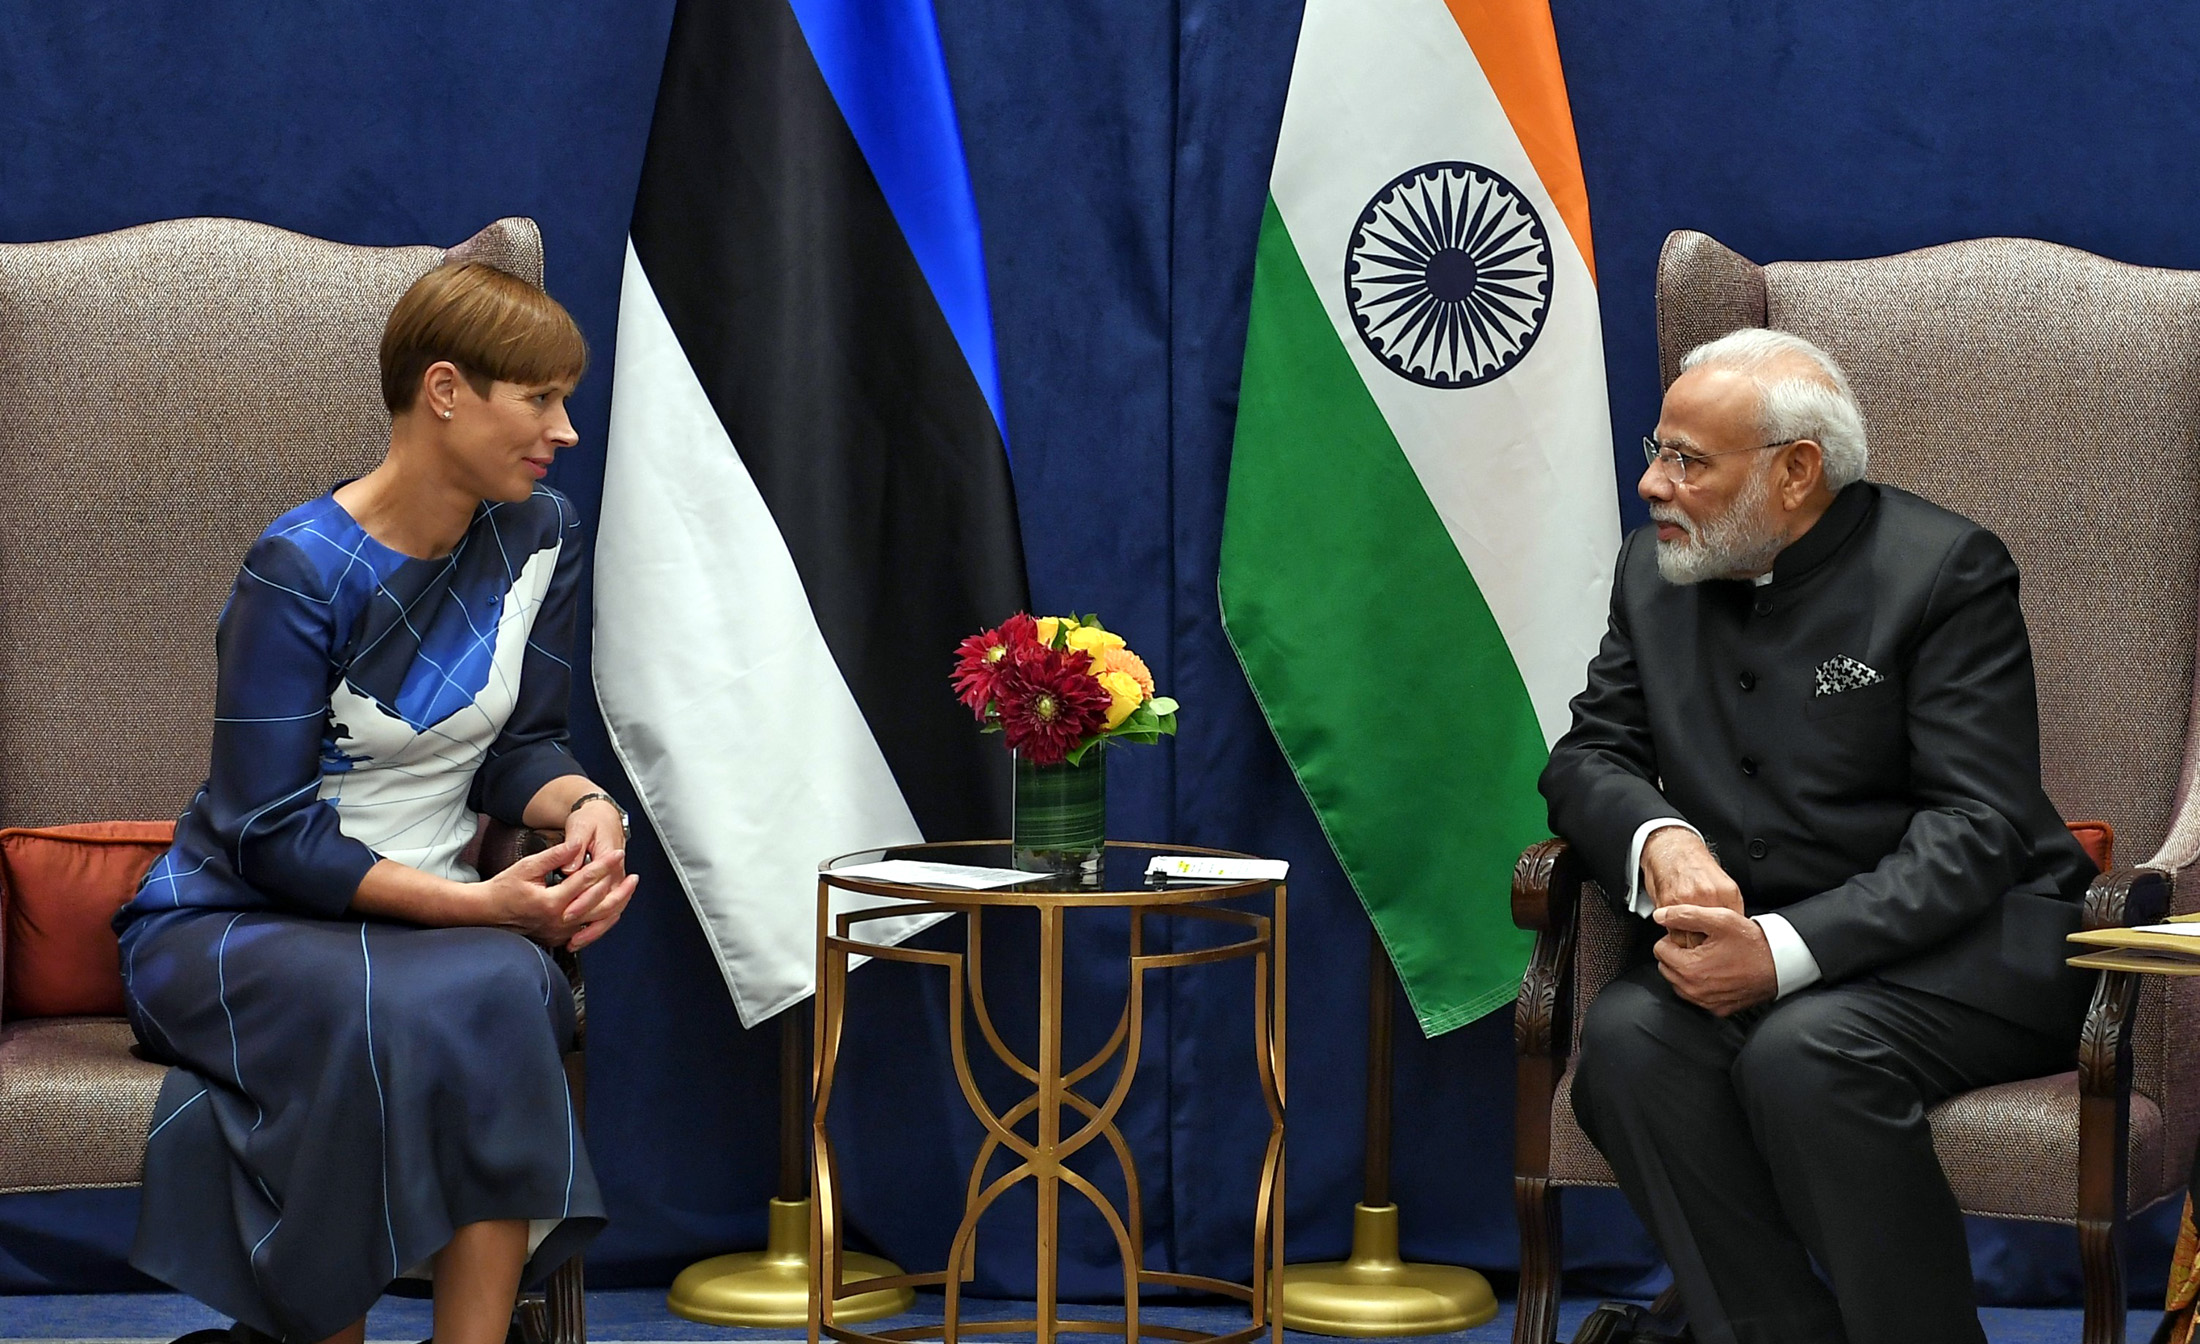 PM's meeting with President of Estonia on sidelines of UNGA 74